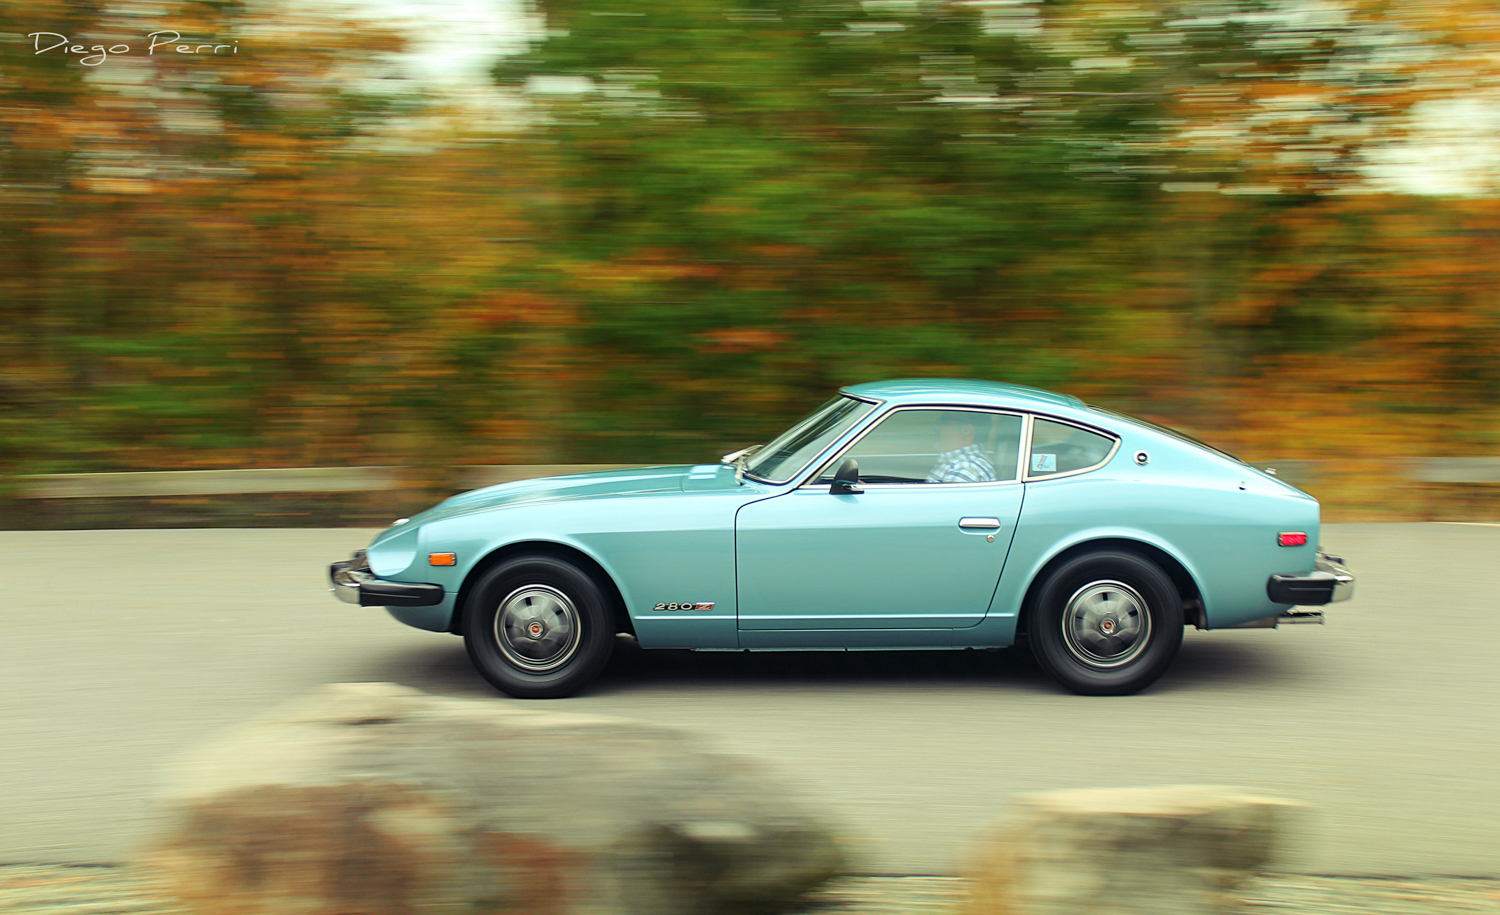 1976 Datsun 280Z side profile driving